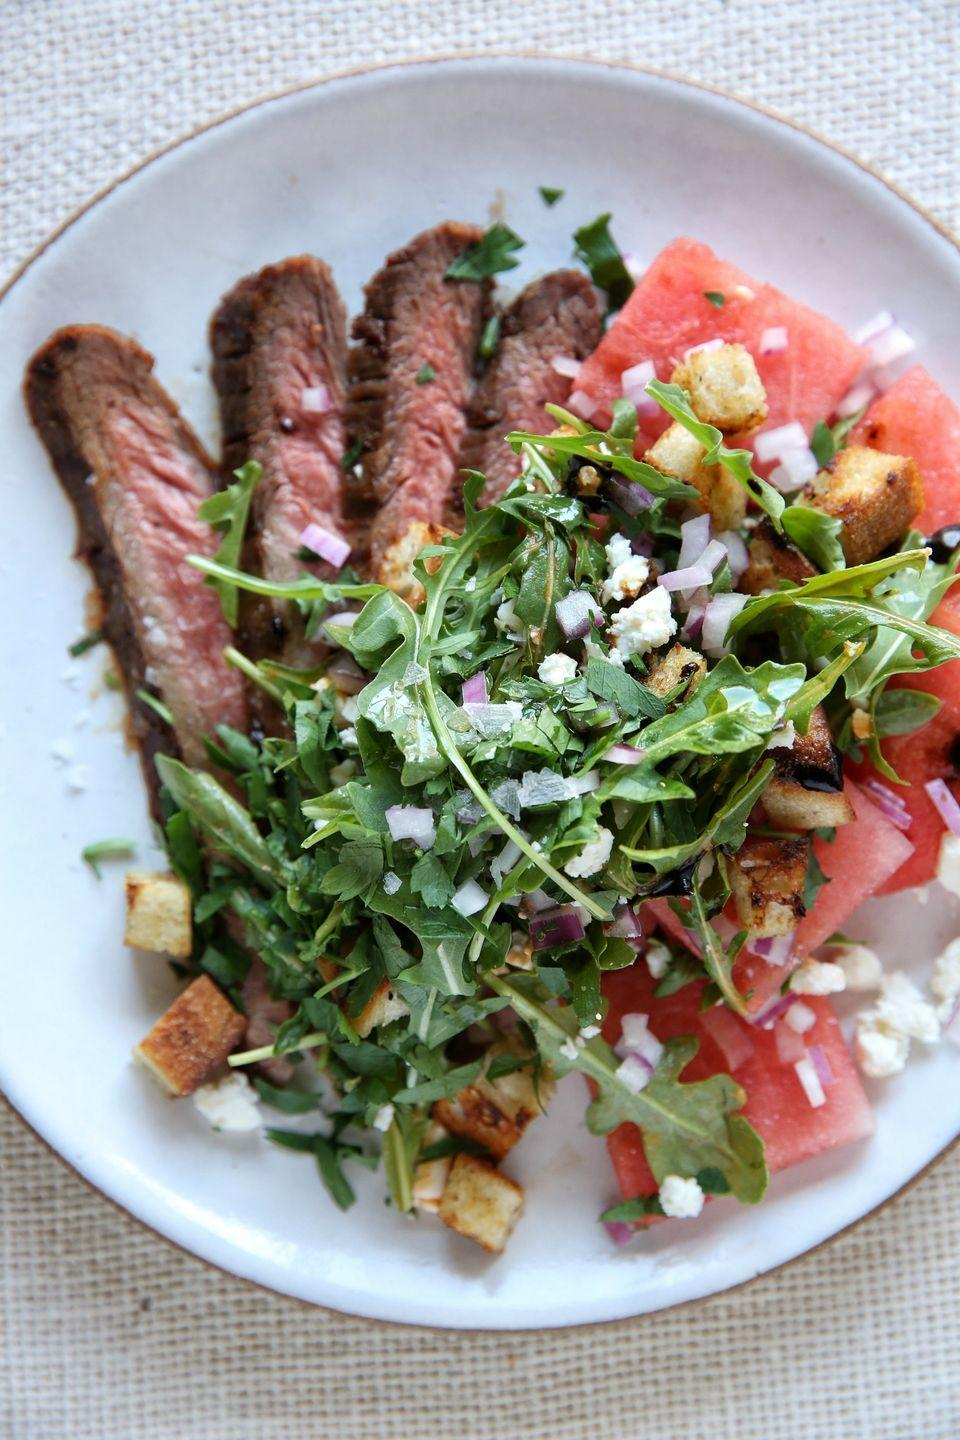 """<p>This simple steak-and-salad combo is classy enough for a summer dinner party.</p><p>Get the recipe from <a href=""""https://www.delish.com/cooking/recipe-ideas/recipes/a48012/flank-steak-with-watermelon-salad-recipe/"""" rel=""""nofollow noopener"""" target=""""_blank"""" data-ylk=""""slk:Delish"""" class=""""link rapid-noclick-resp"""">Delish</a>.</p>"""